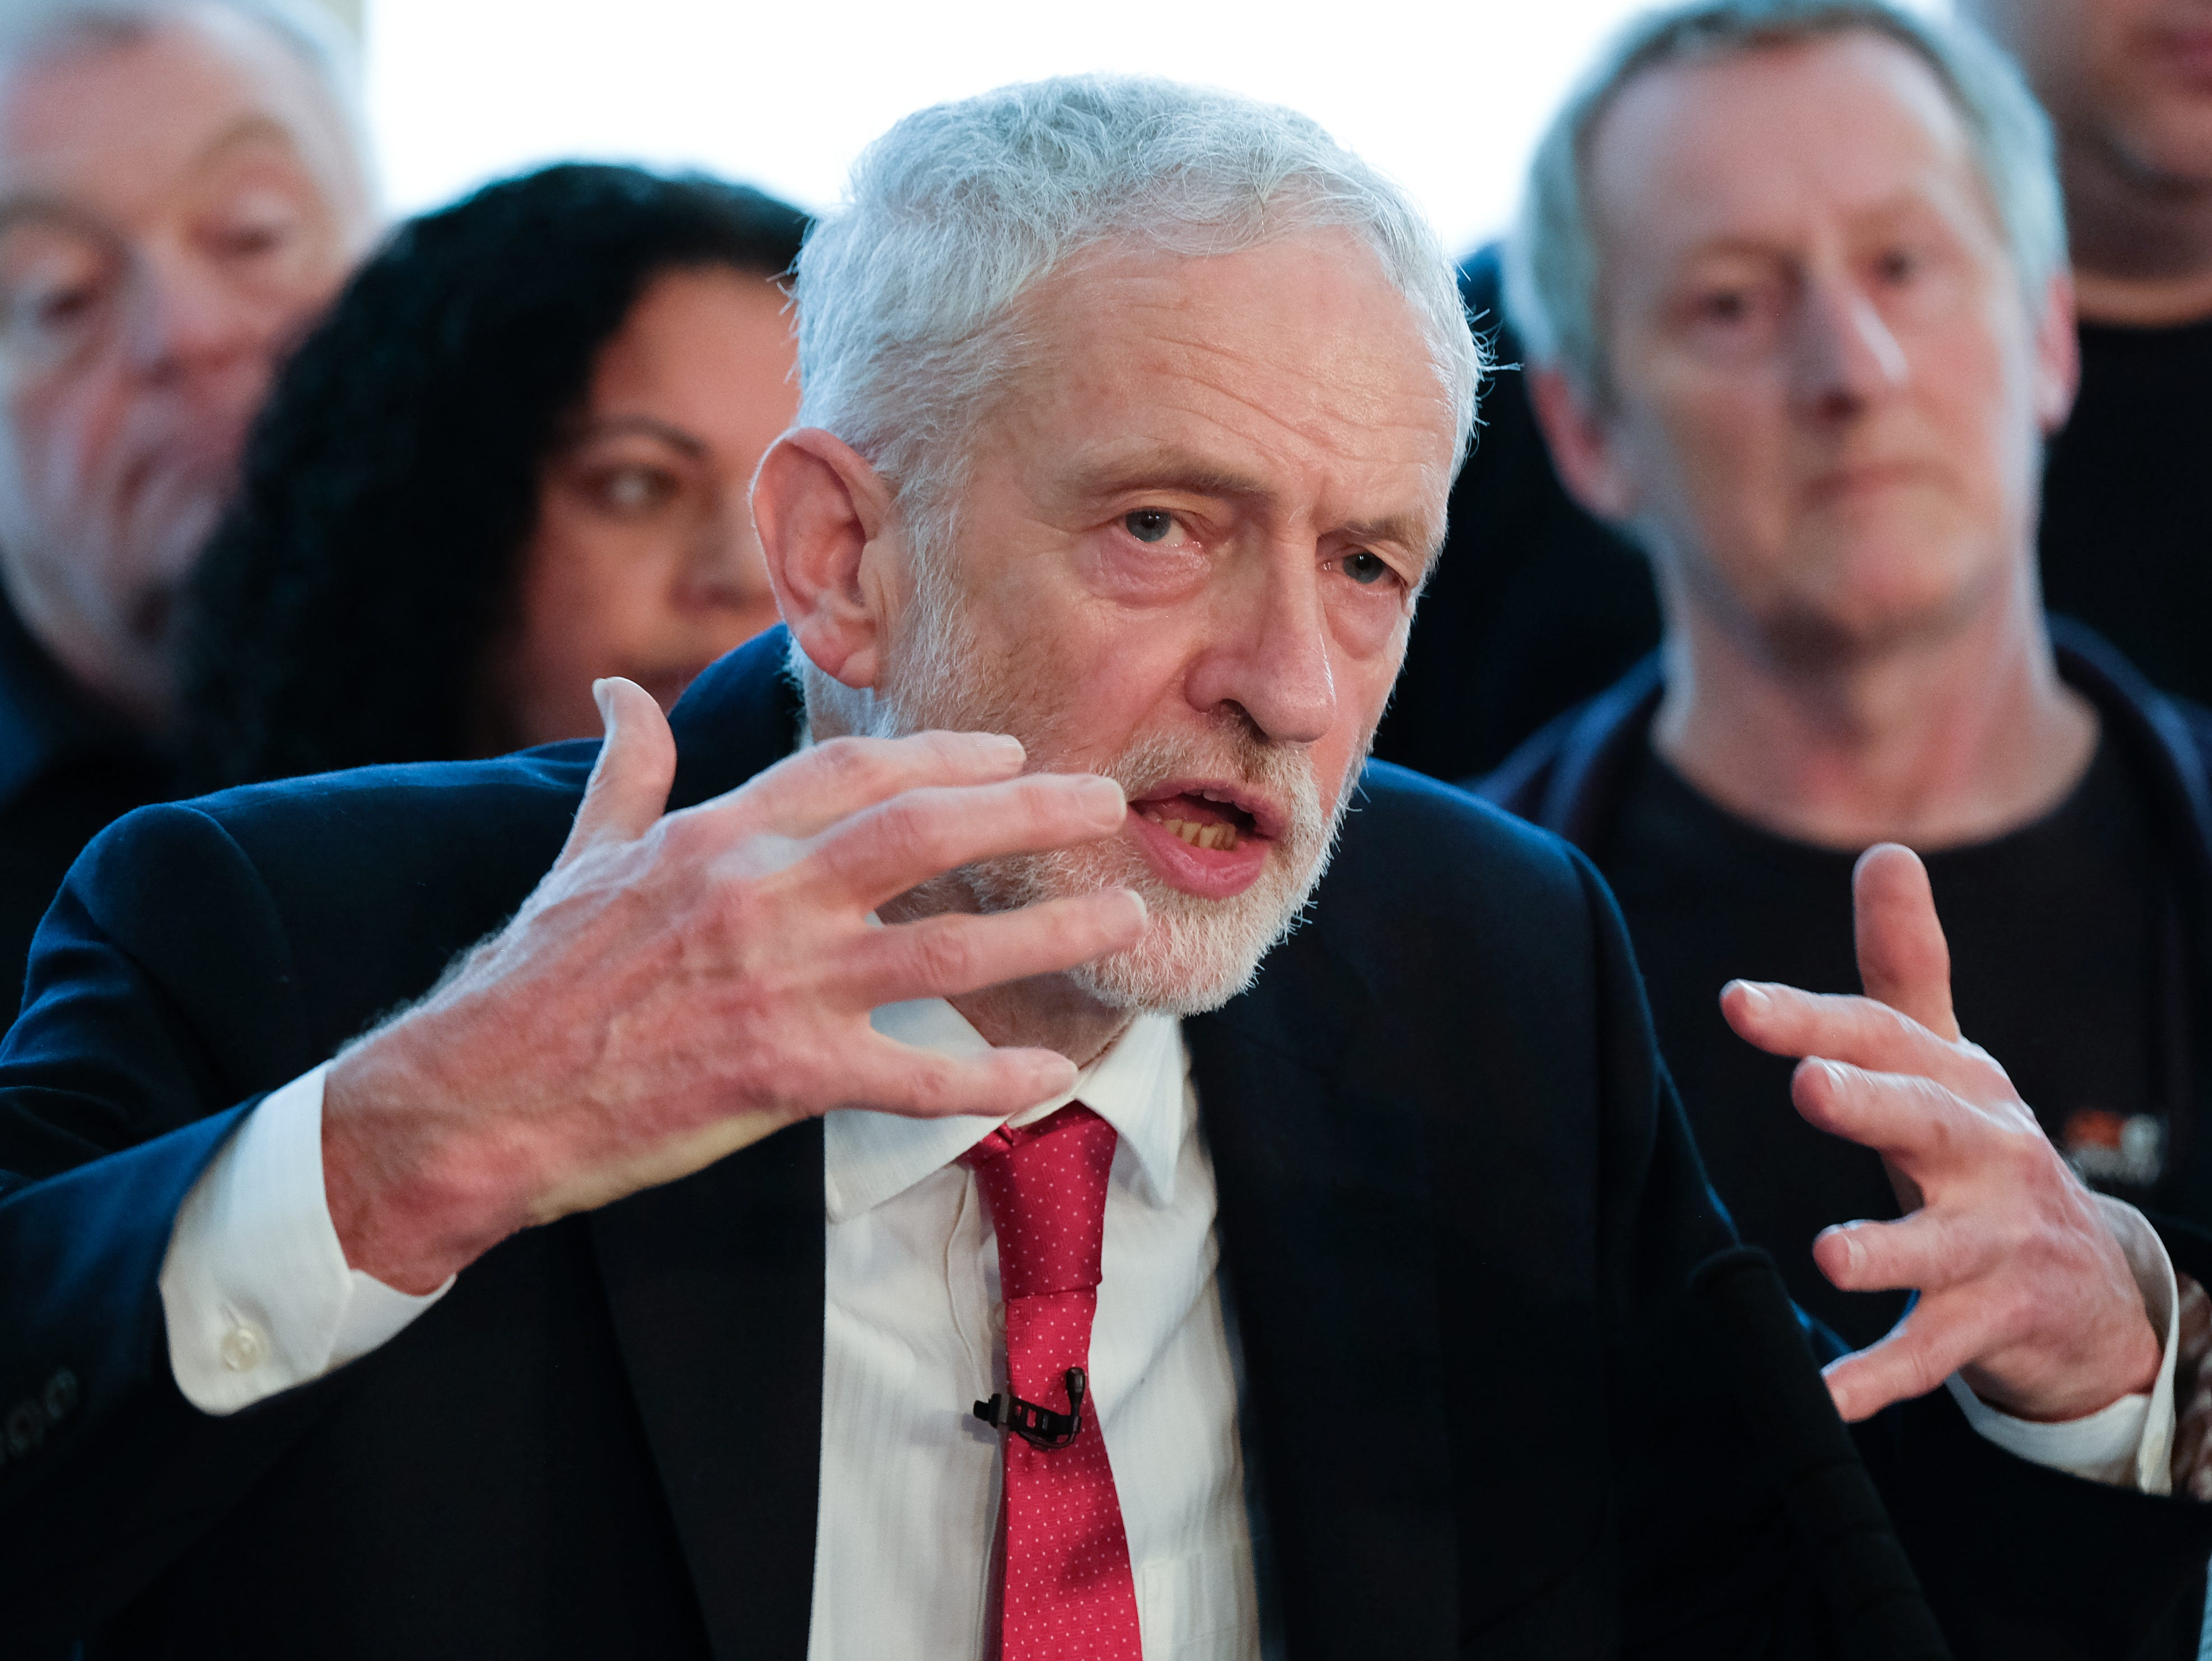 Labour leader Jeremy Corbyn delivers a speech to members of the media where he outlined Labour's approach to Brexit at the OE Electrics manufacturing factory on Jan. 10, 2019 in Wakefield, England. The speech and q&a session came ahead of the Meaningful Vote on Theresa Mays Brexit deal that is scheduled to take place next Tuesday.